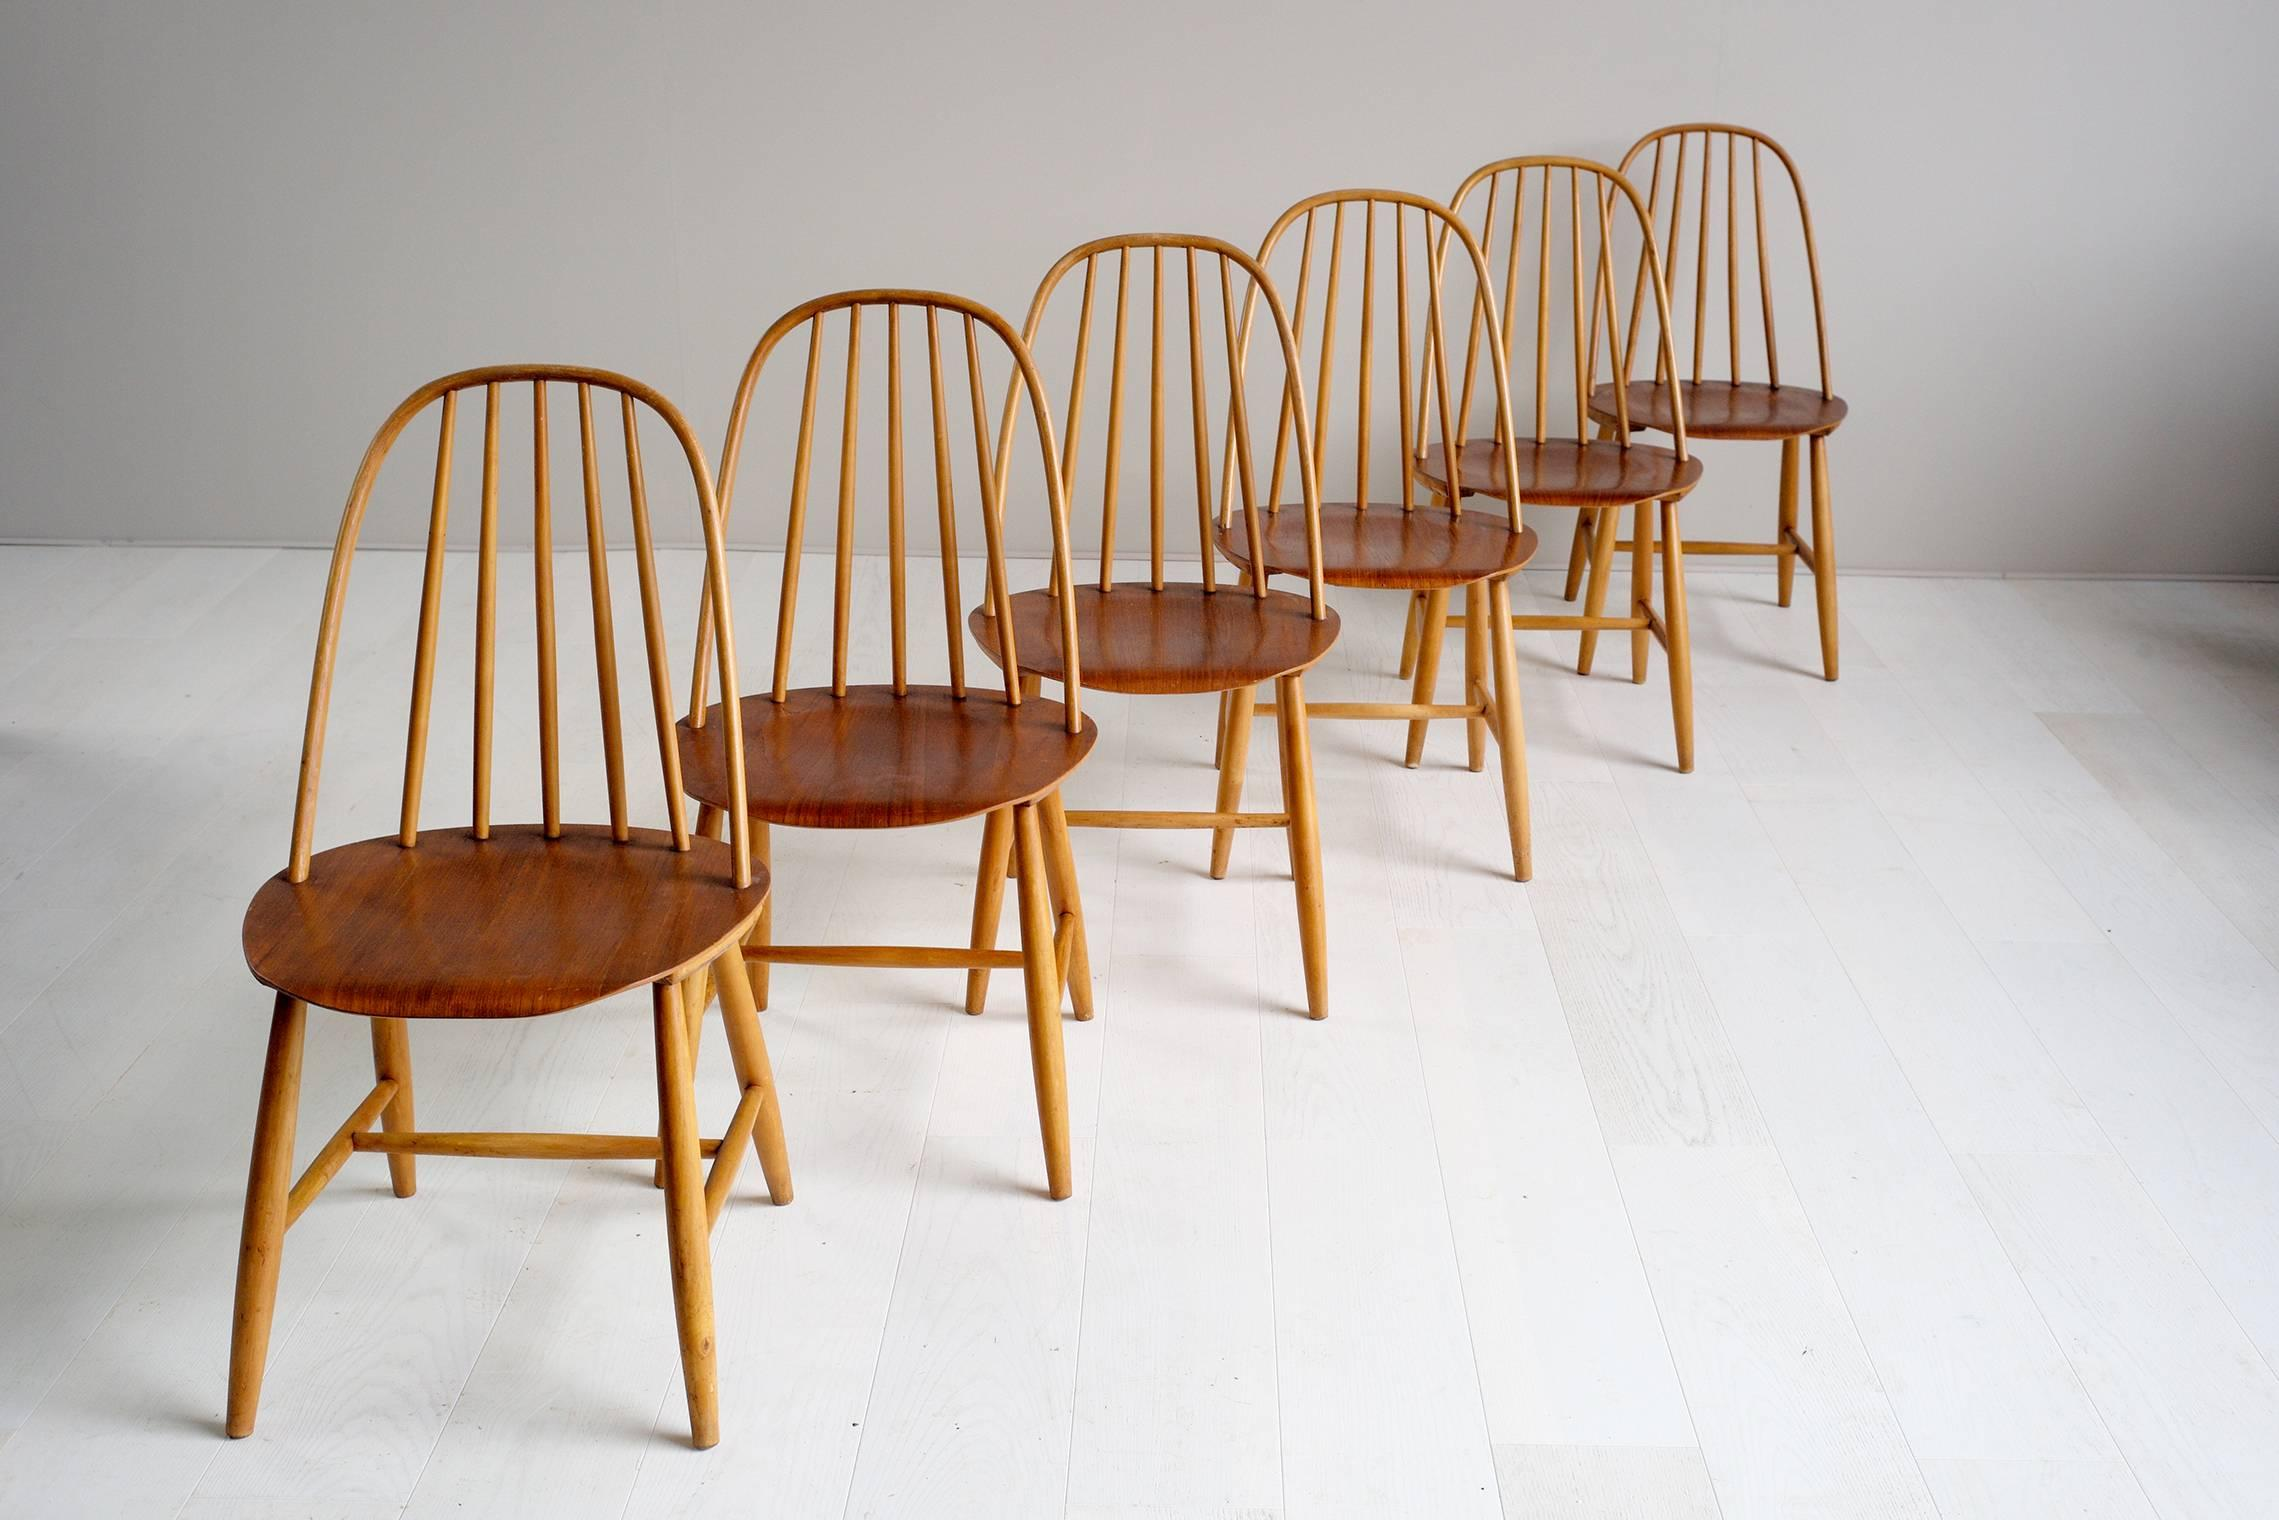 Dining Chairs By Sven Erik Fryklund